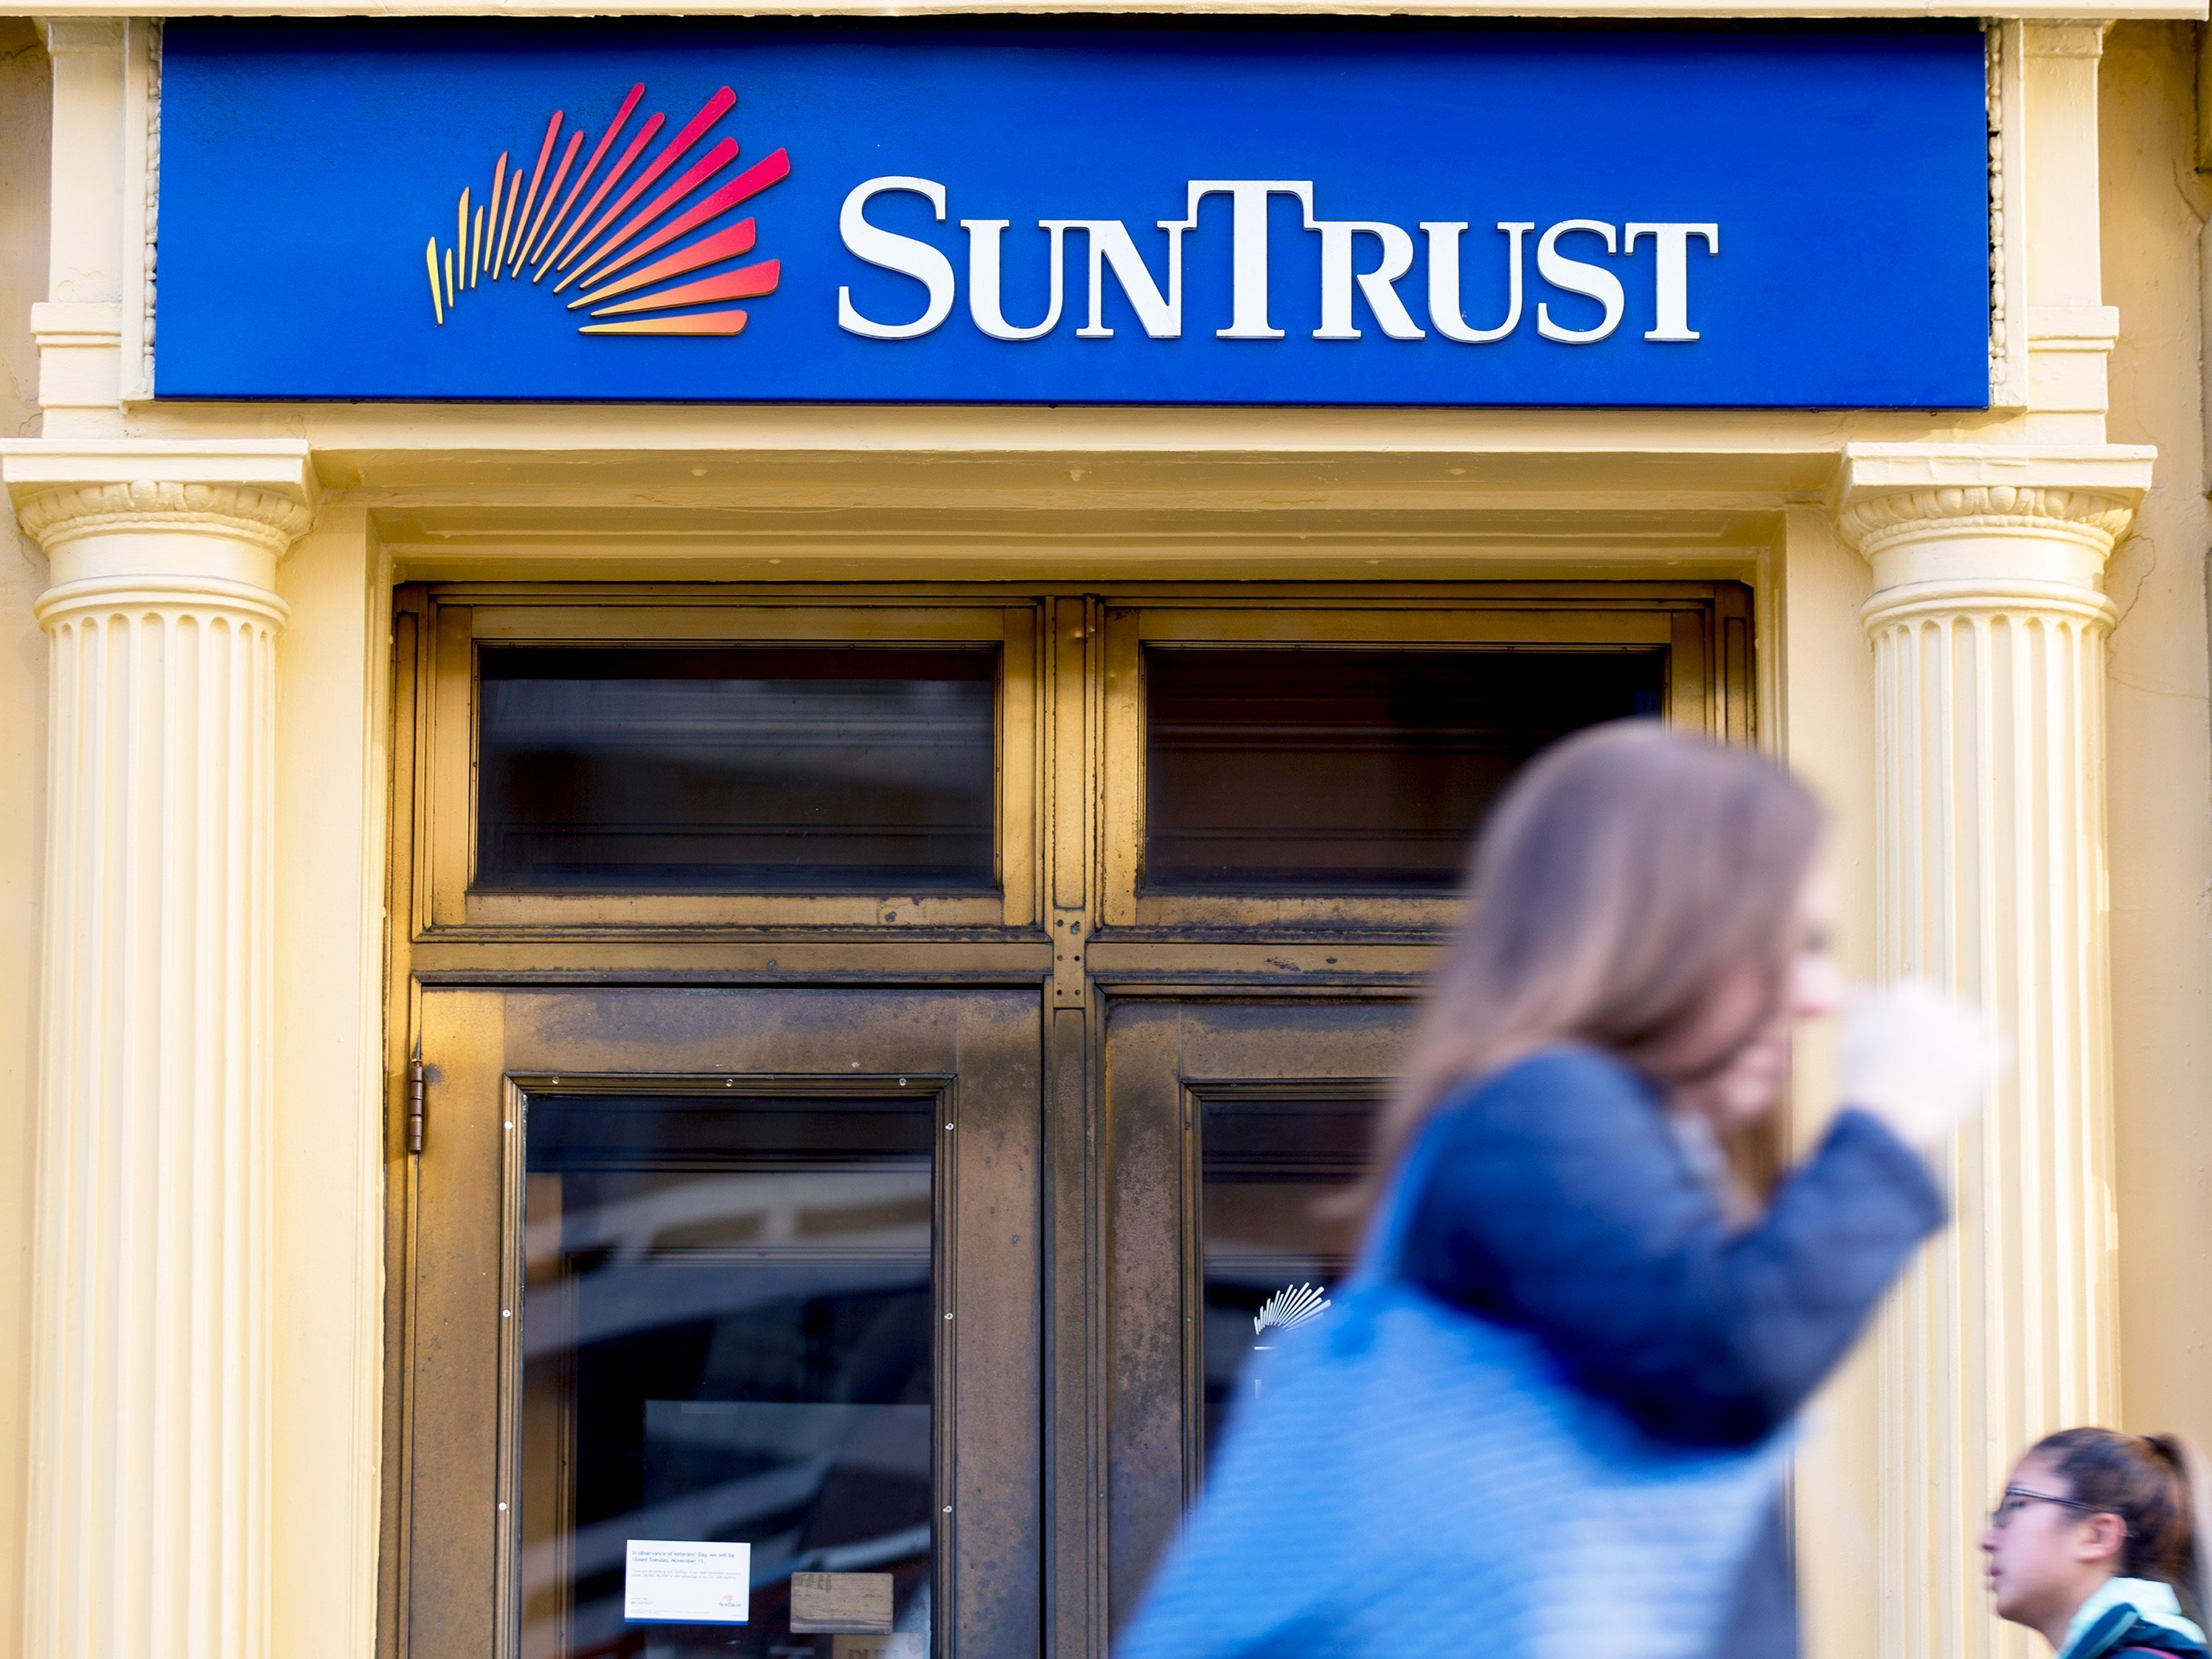 SunTrust Bank Says Former Employee Stole Details on 1.5 Million Customers